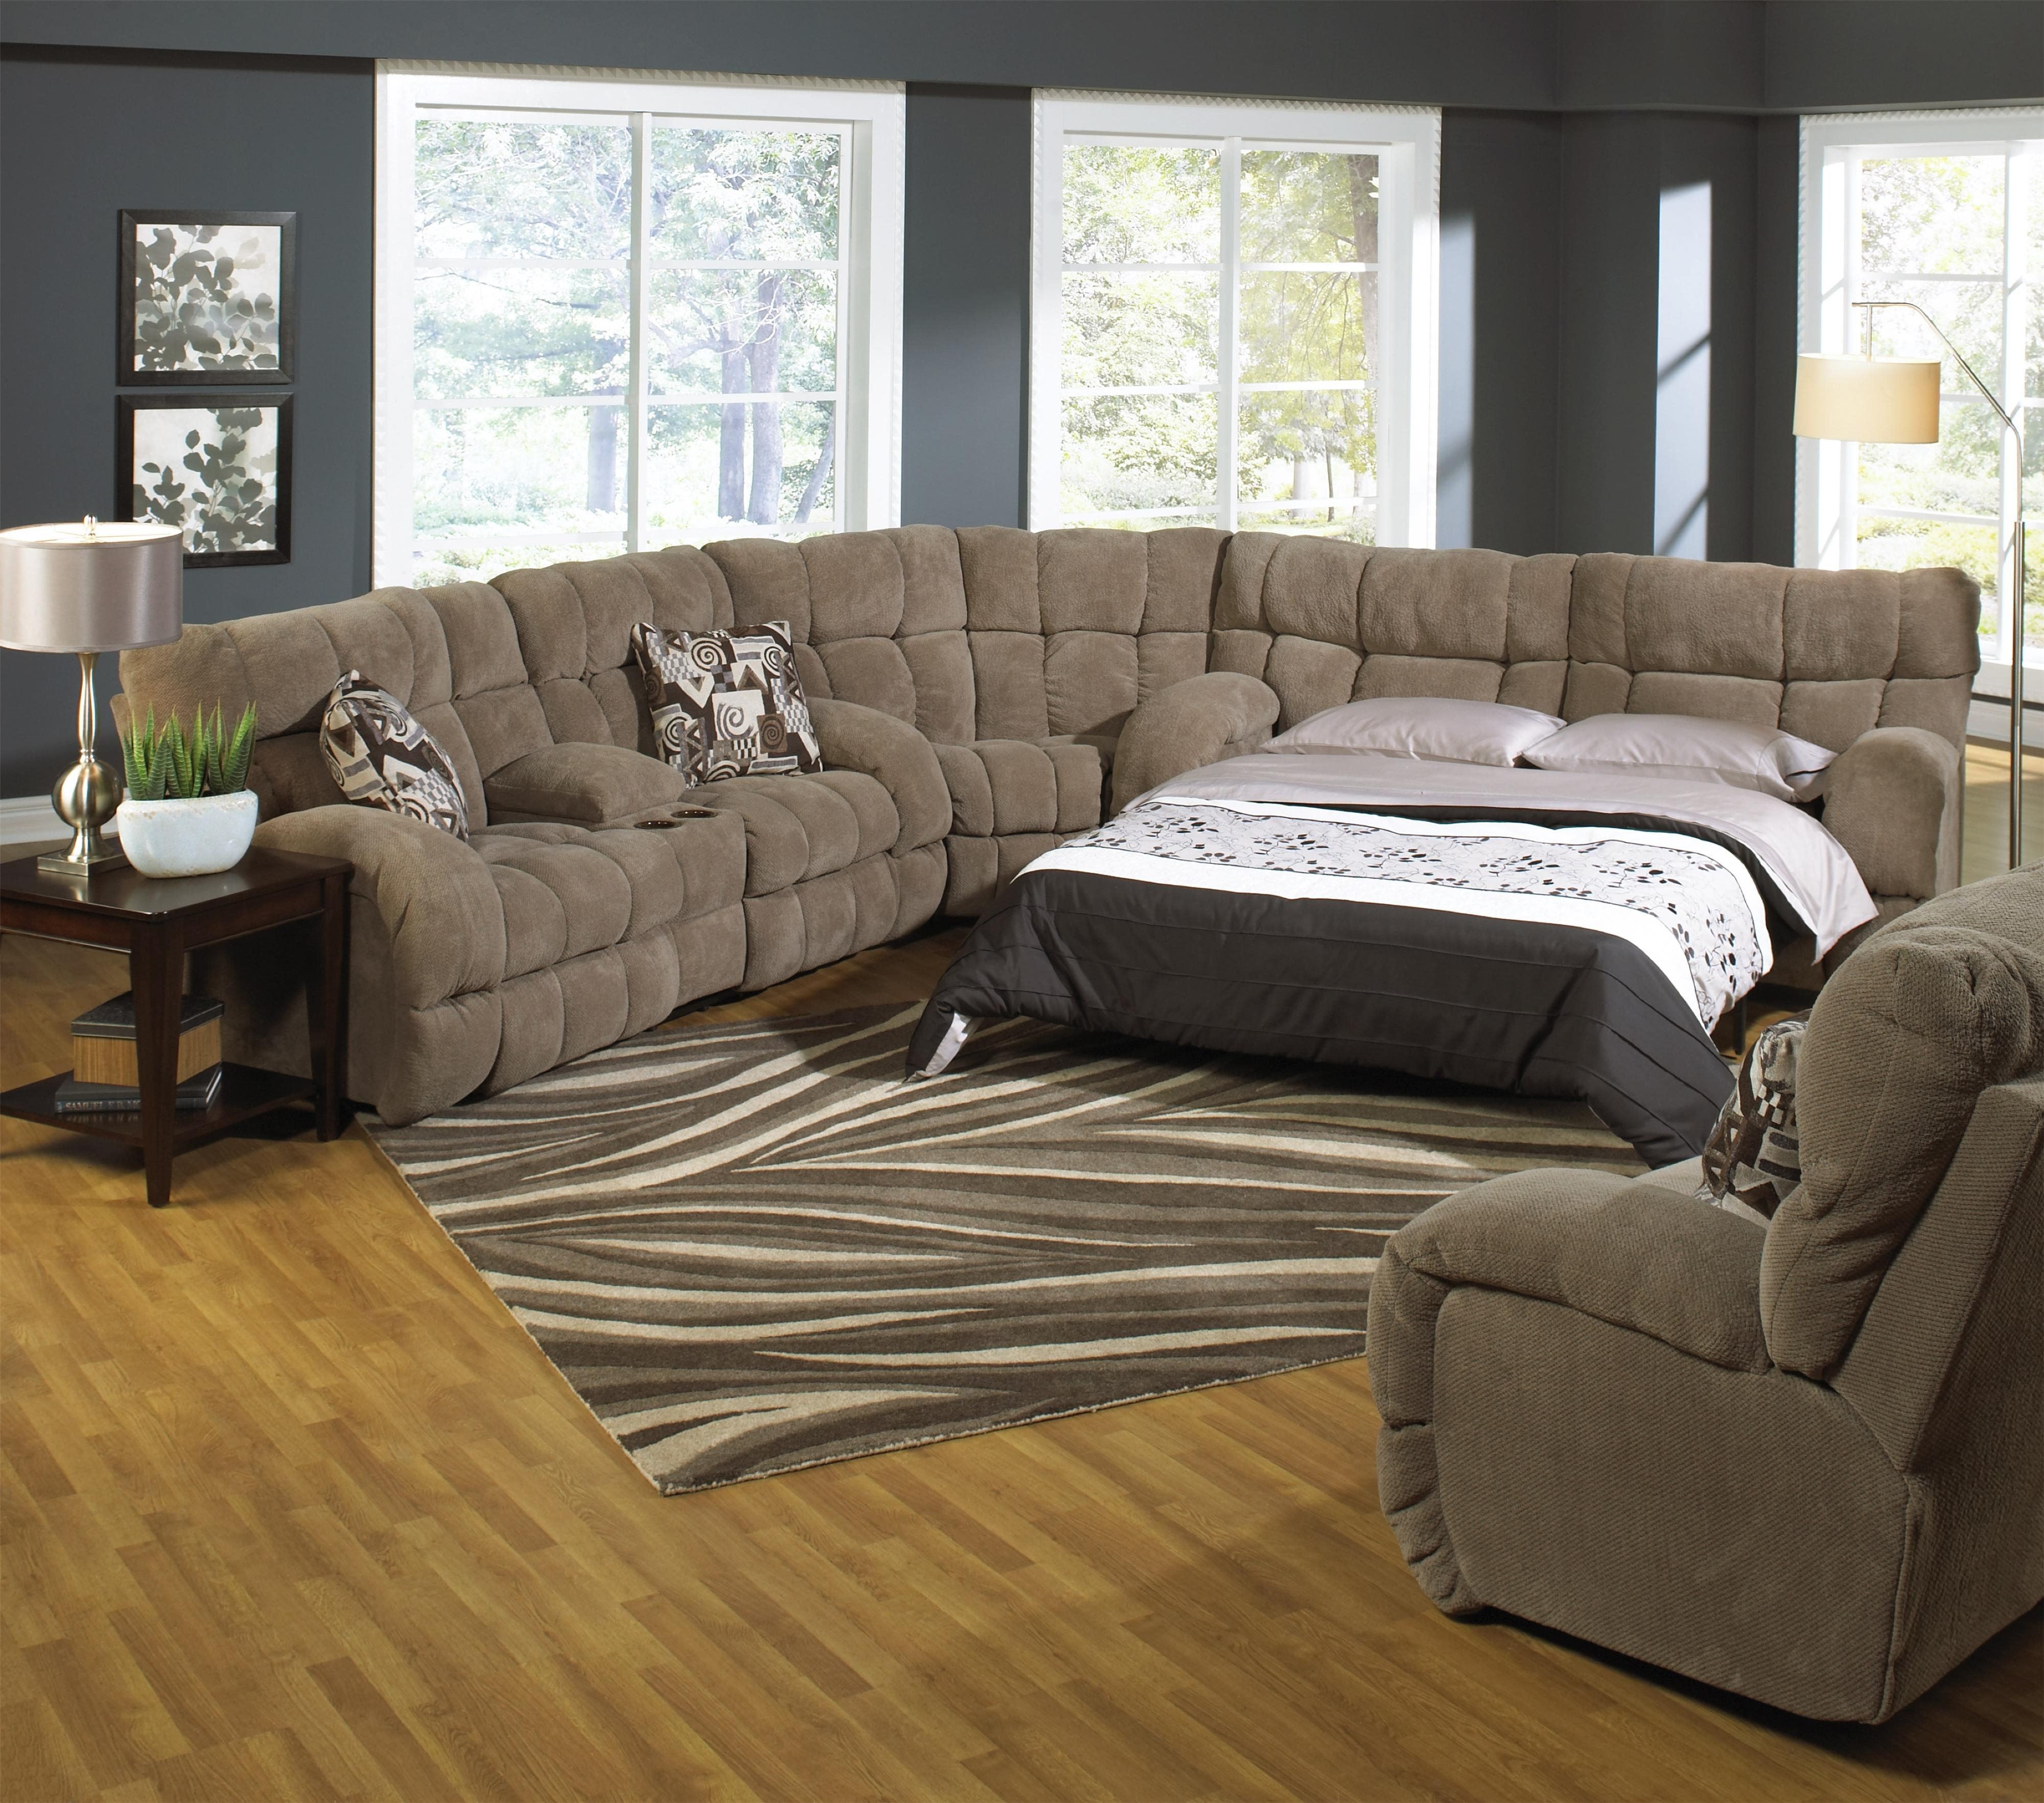 Sectional Sofa With Recliner And Queen Sleeper | Catosfera In Adjustable Sectional Sofas With Queen Bed (Image 7 of 10)